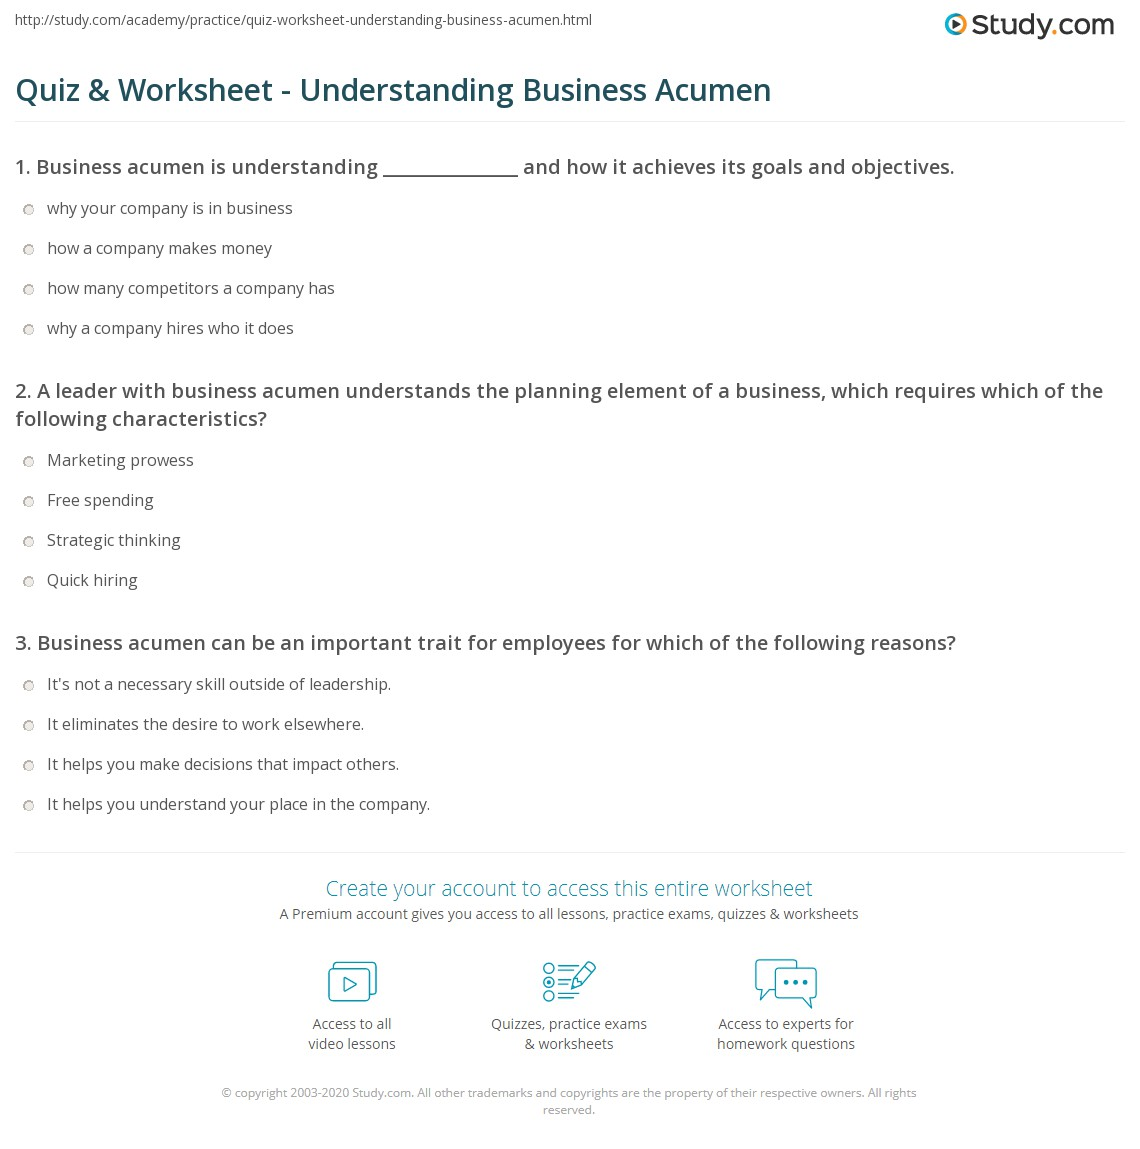 quiz & worksheet - understanding business acumen | study